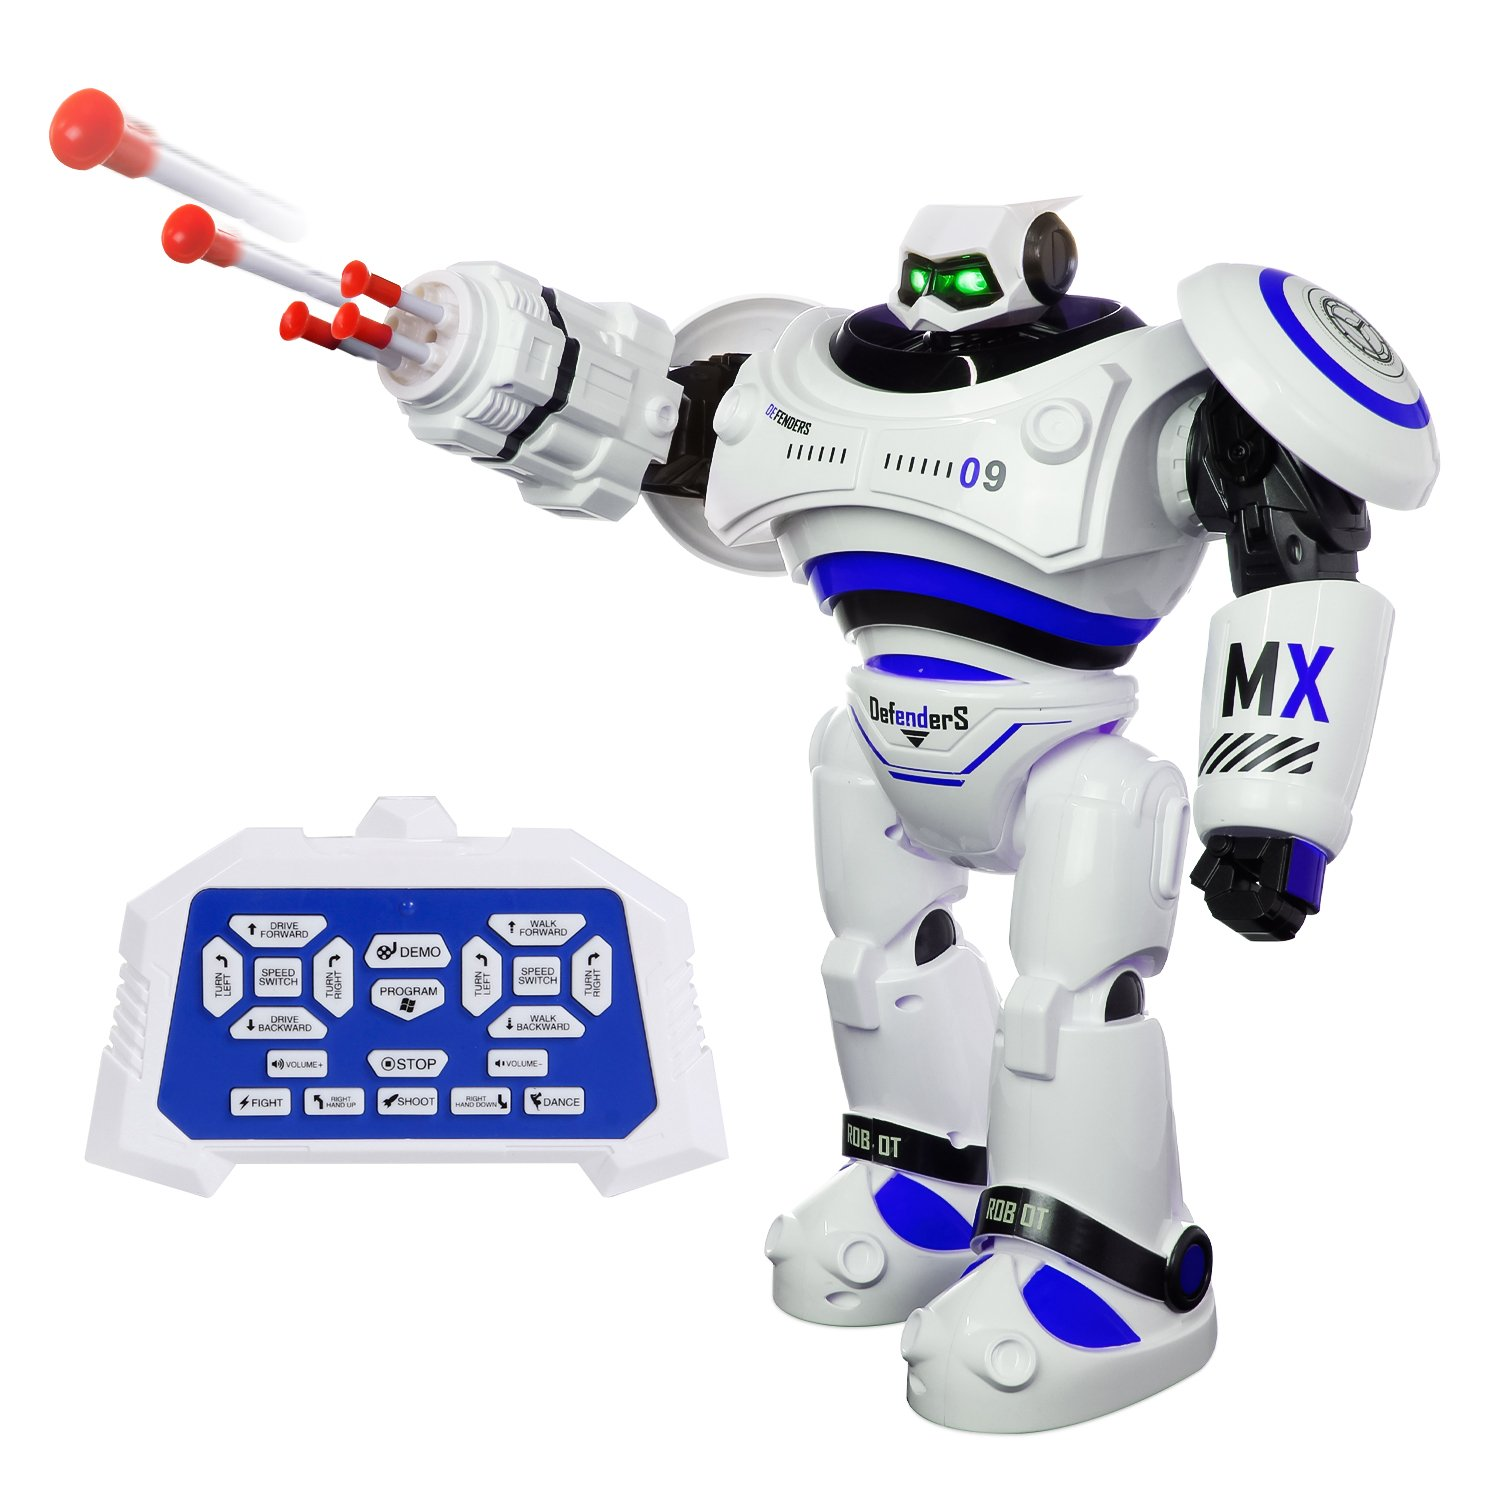 Large Robot Toy, Remote Control RC Combat Fighting Robot for Kids Birthday Present Gift, Dancing Shooting Infrared Sensing Robot for Kids Boy Girl by Toch (Image #1)